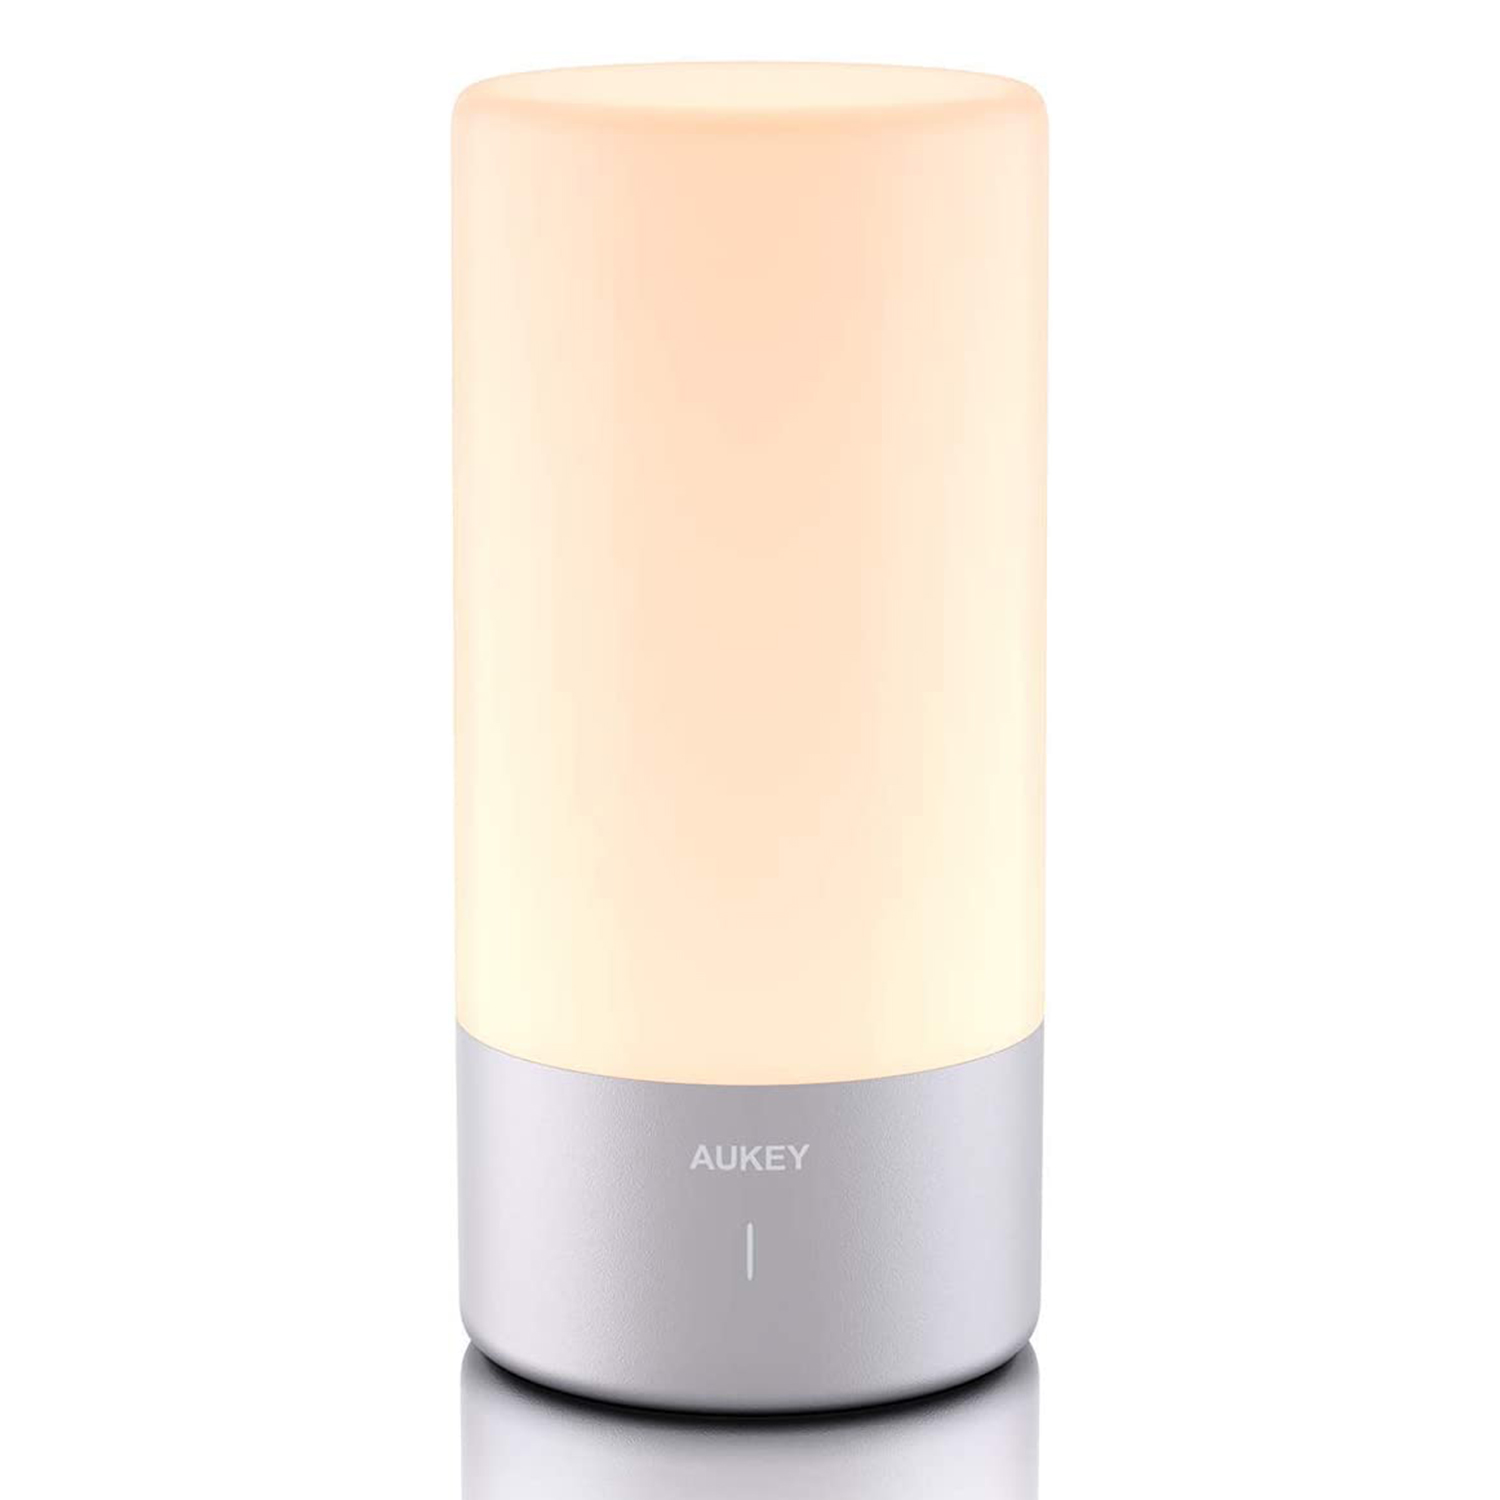 AUKEY Table Lamp Touch Sensor Bedside Lamp Color Changing